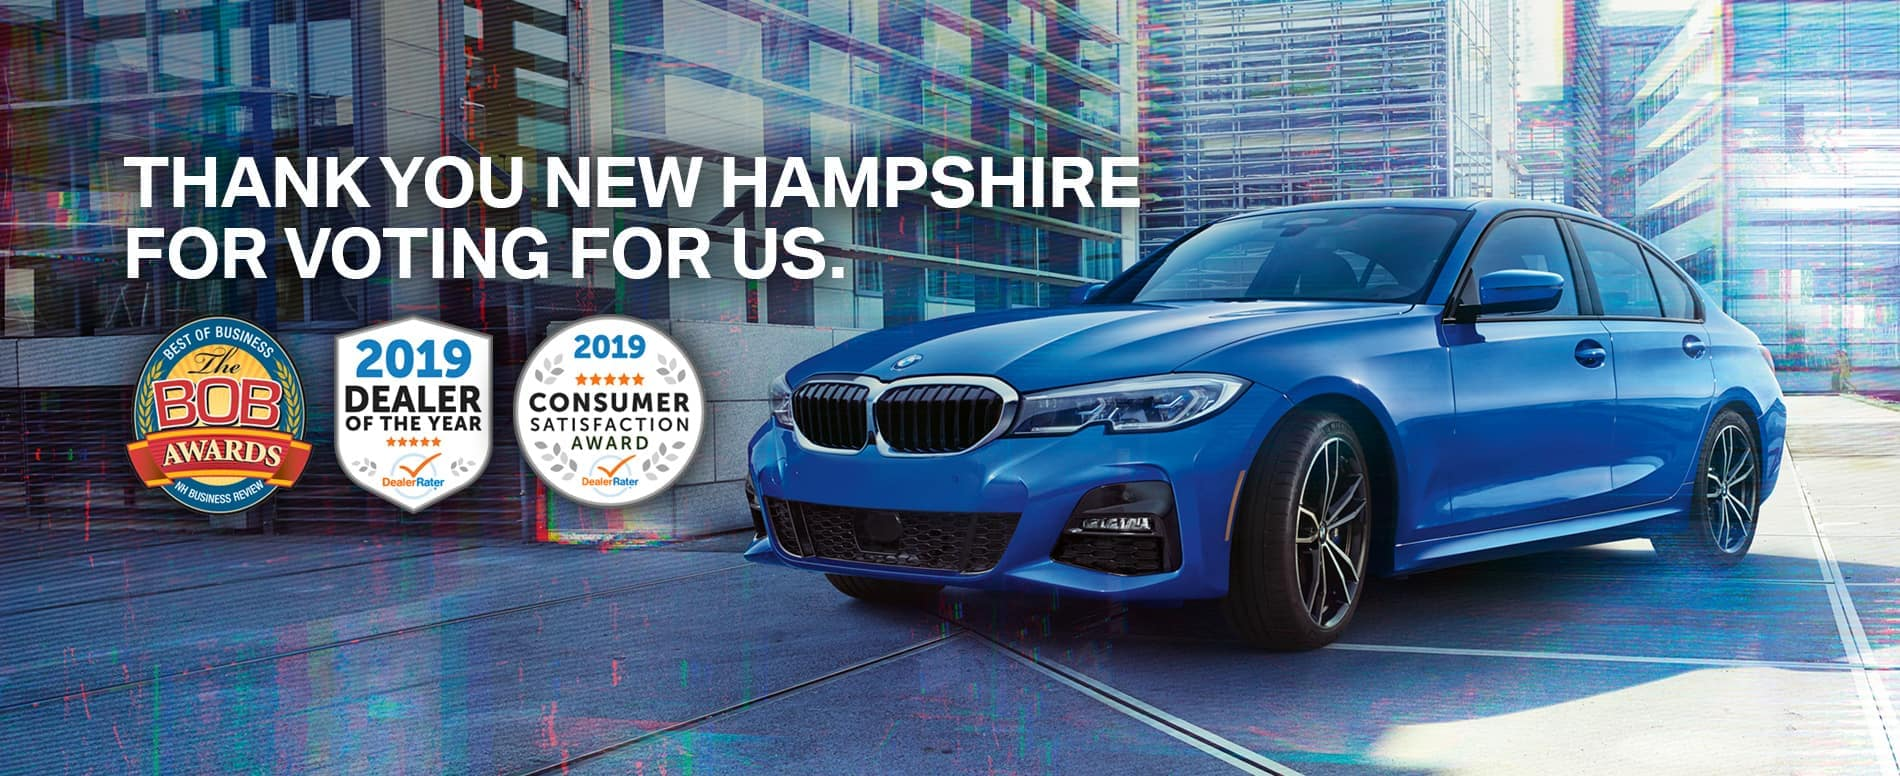 Tulley bmw manchester new hampshire